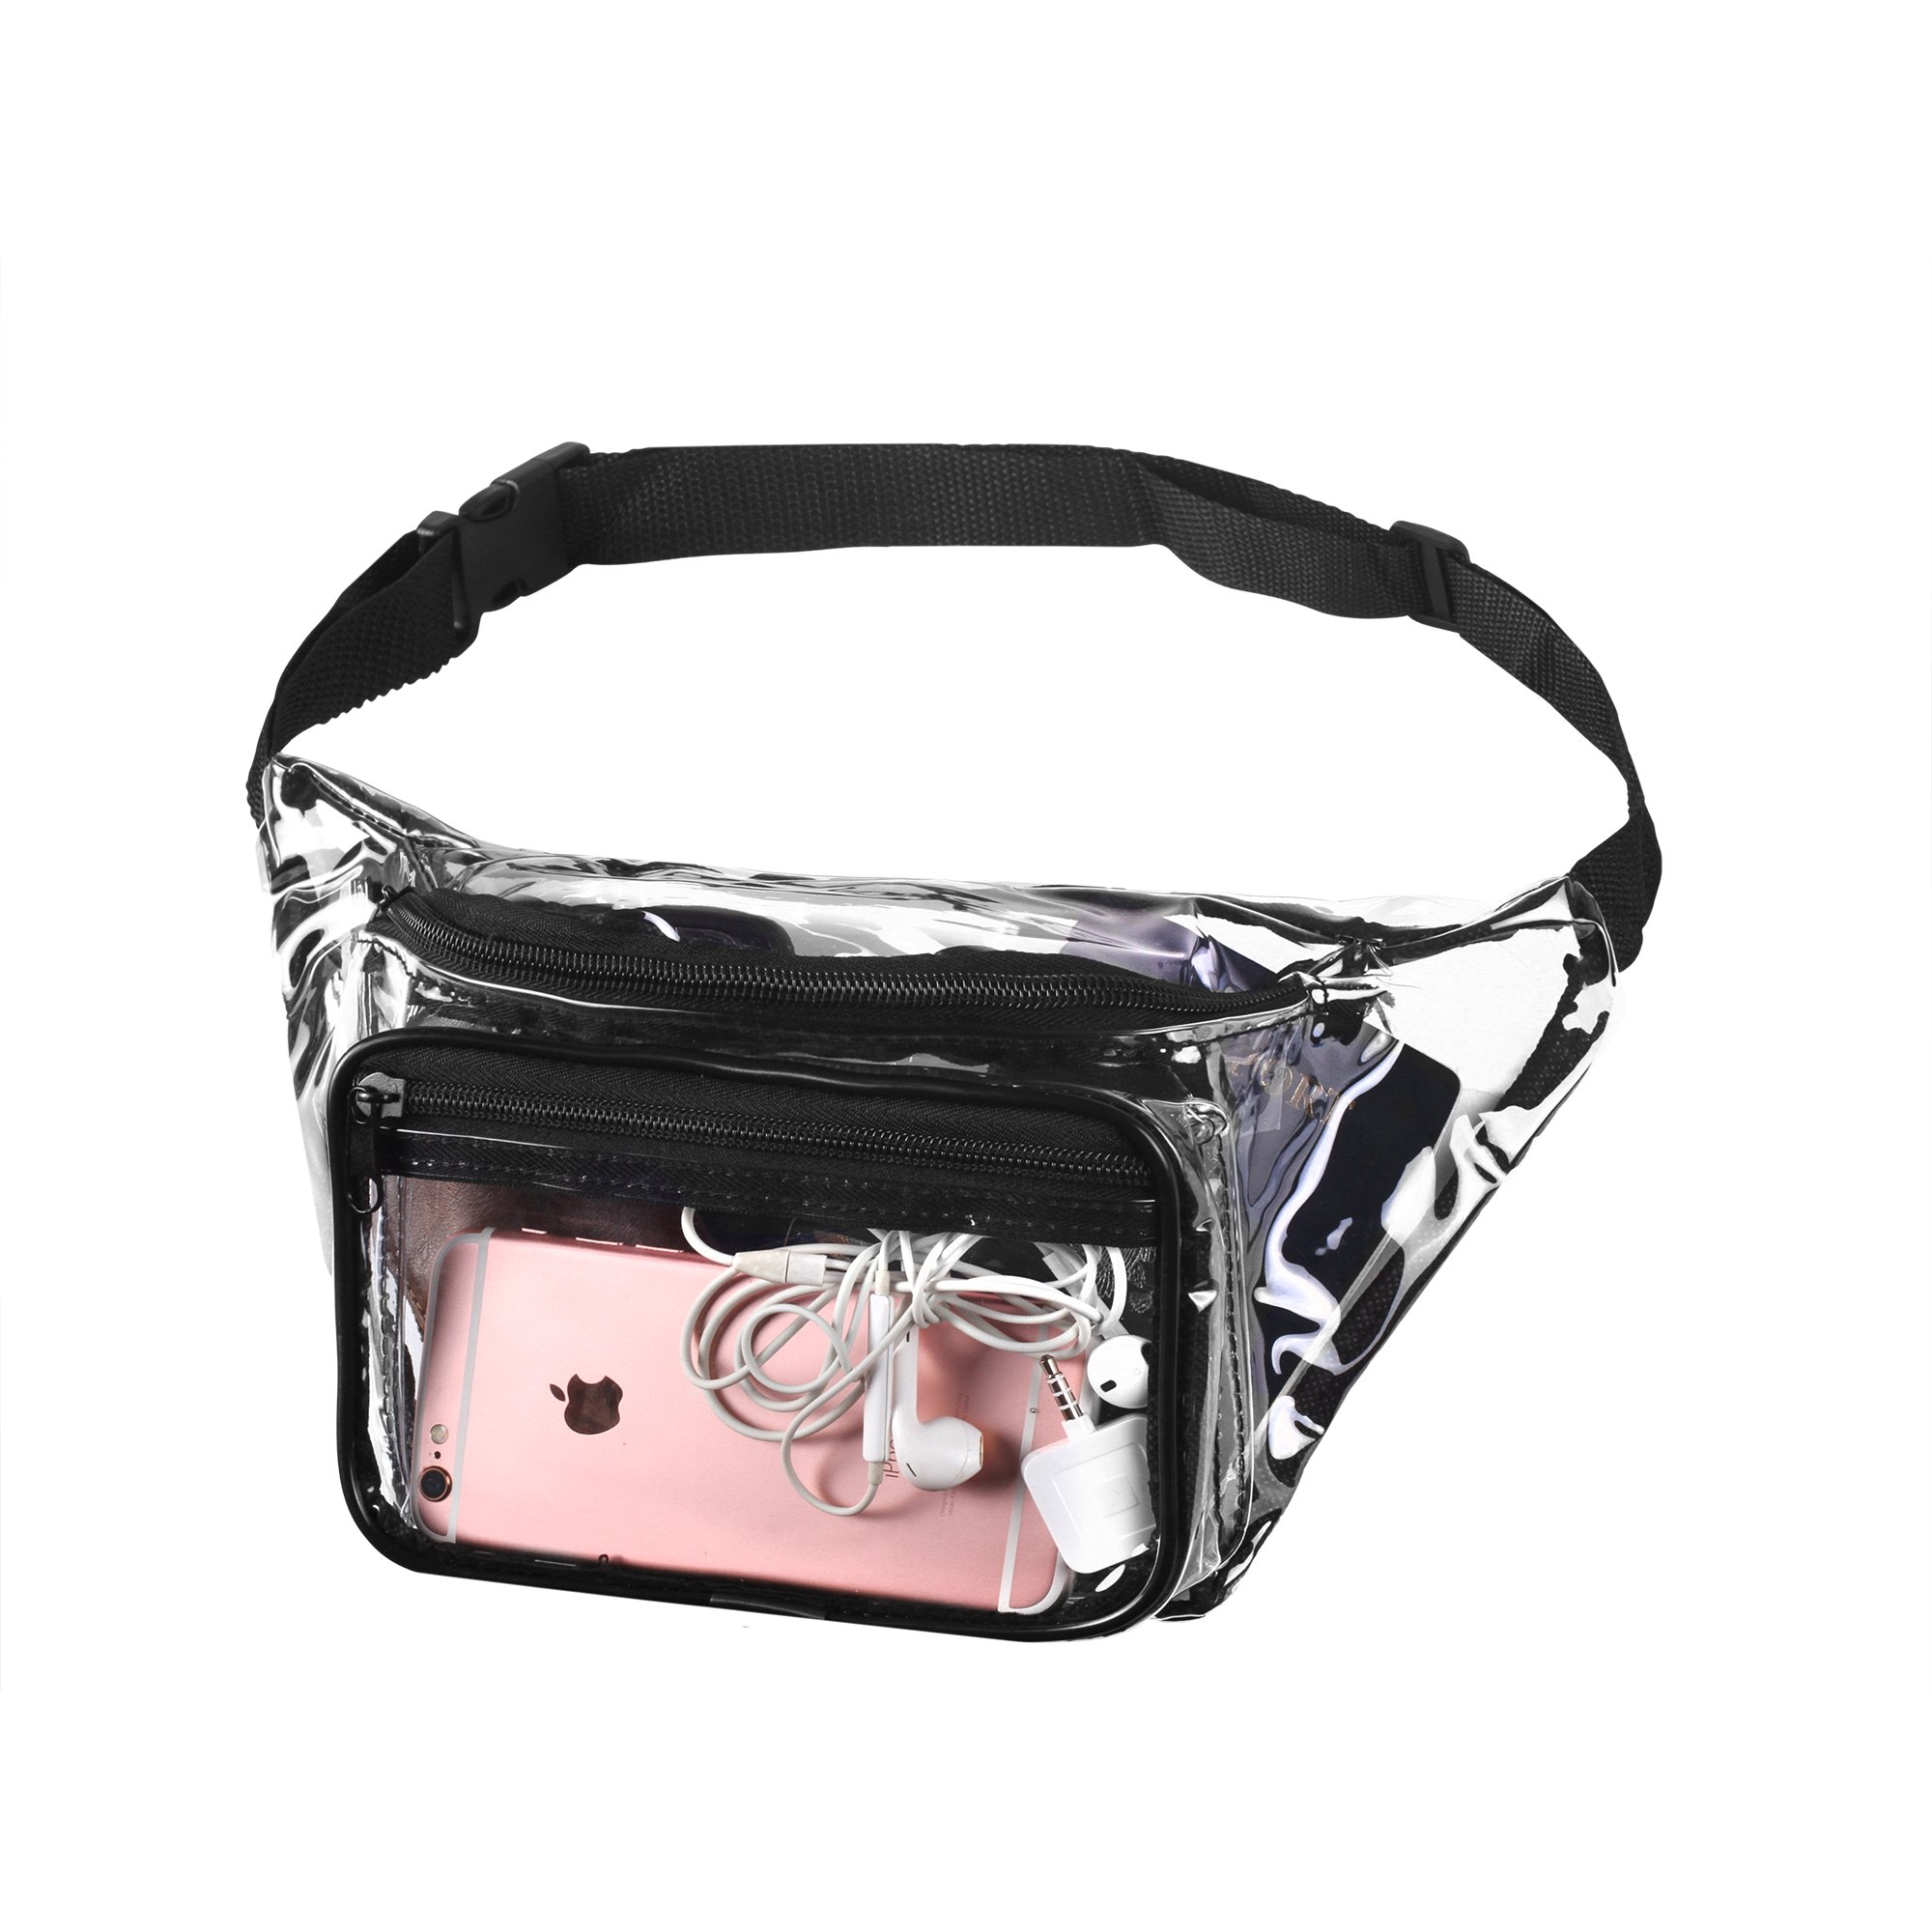 Transparent Waist Fanny Pack Clear Purse Security Stadium Pockets Adjustable Strap